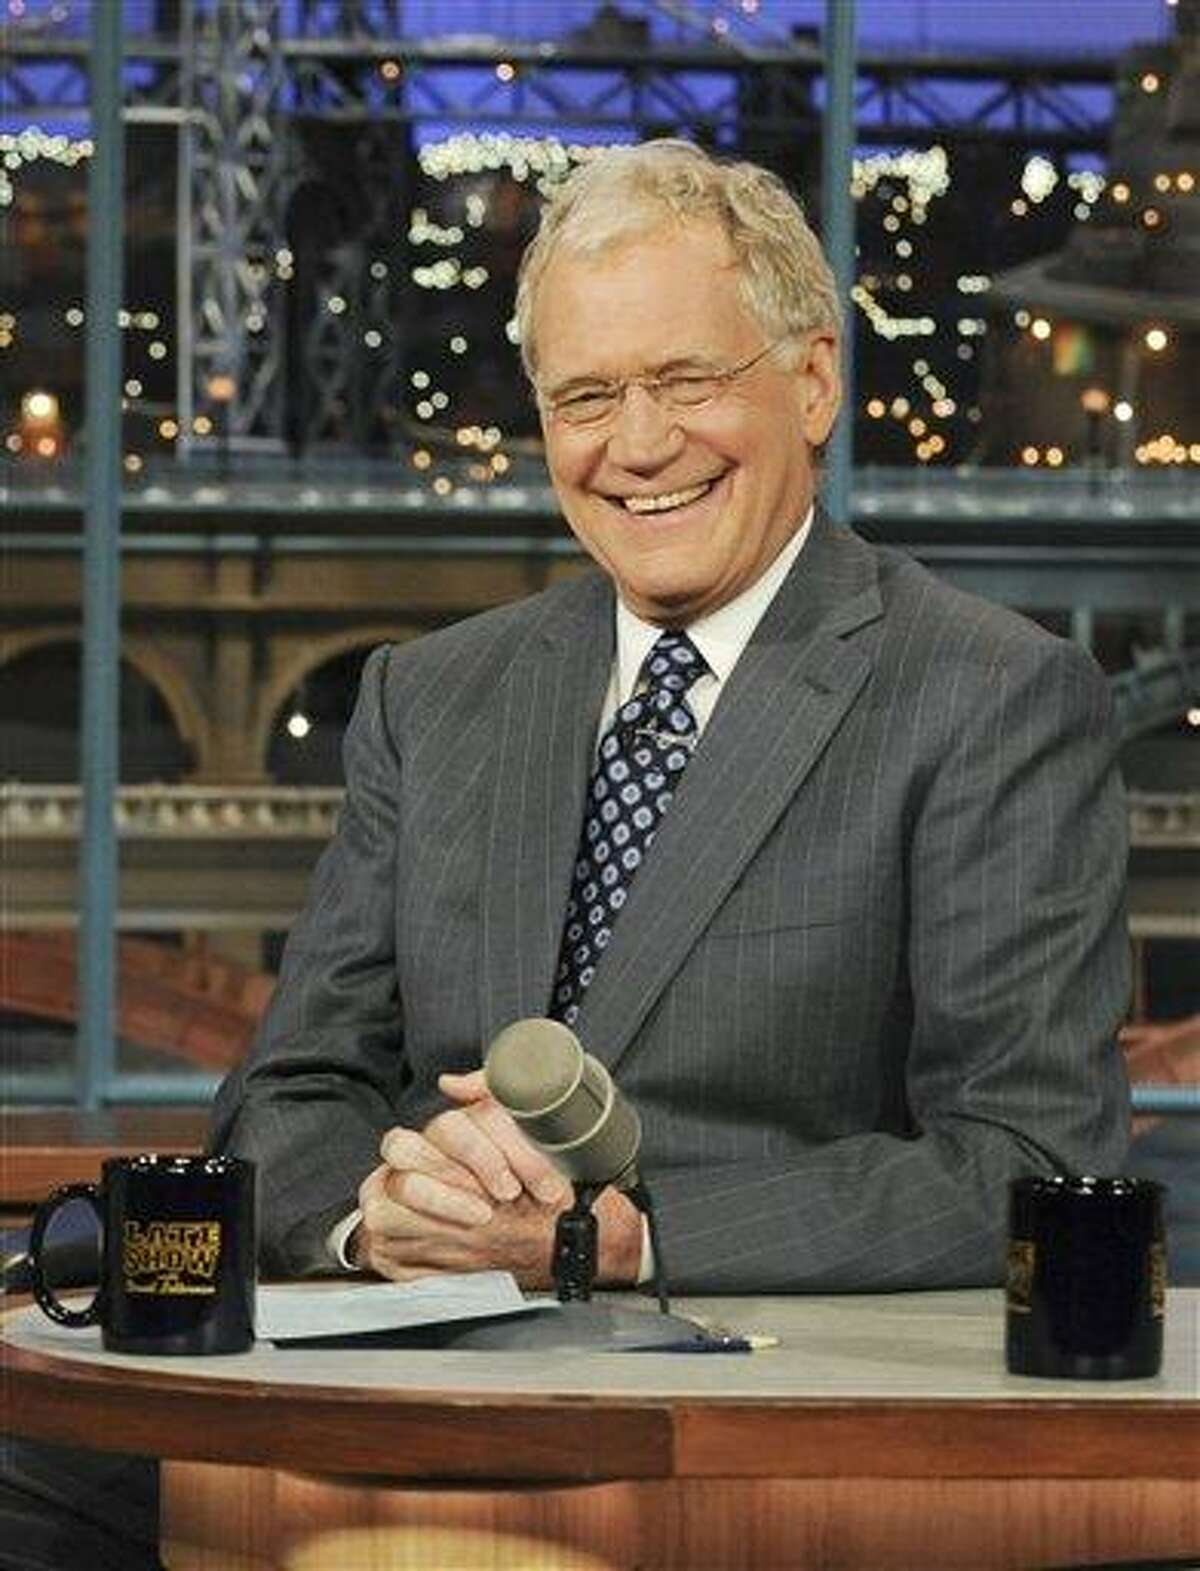 """FILE - In this April 21, 2010 file photo released by CBS, host David Letterman is shown on the set of the """"Late Show with David Letterman, in New York. A frequent poster on a jihadist website has threatened David Letterman, urging Muslim followers to """"cut the tongue"""" of the late-night host because of a joke made by the comic on his late-night CBS show. The poster, who identified himself as Umar al-Basrawi, was reacting to something Letterman said after the U.S. military said on June 5 that a drone strike in Pakistan had killed al Qaida leader Ilyas Kashmiri. (AP Photo/CBS, Heather Wines)"""